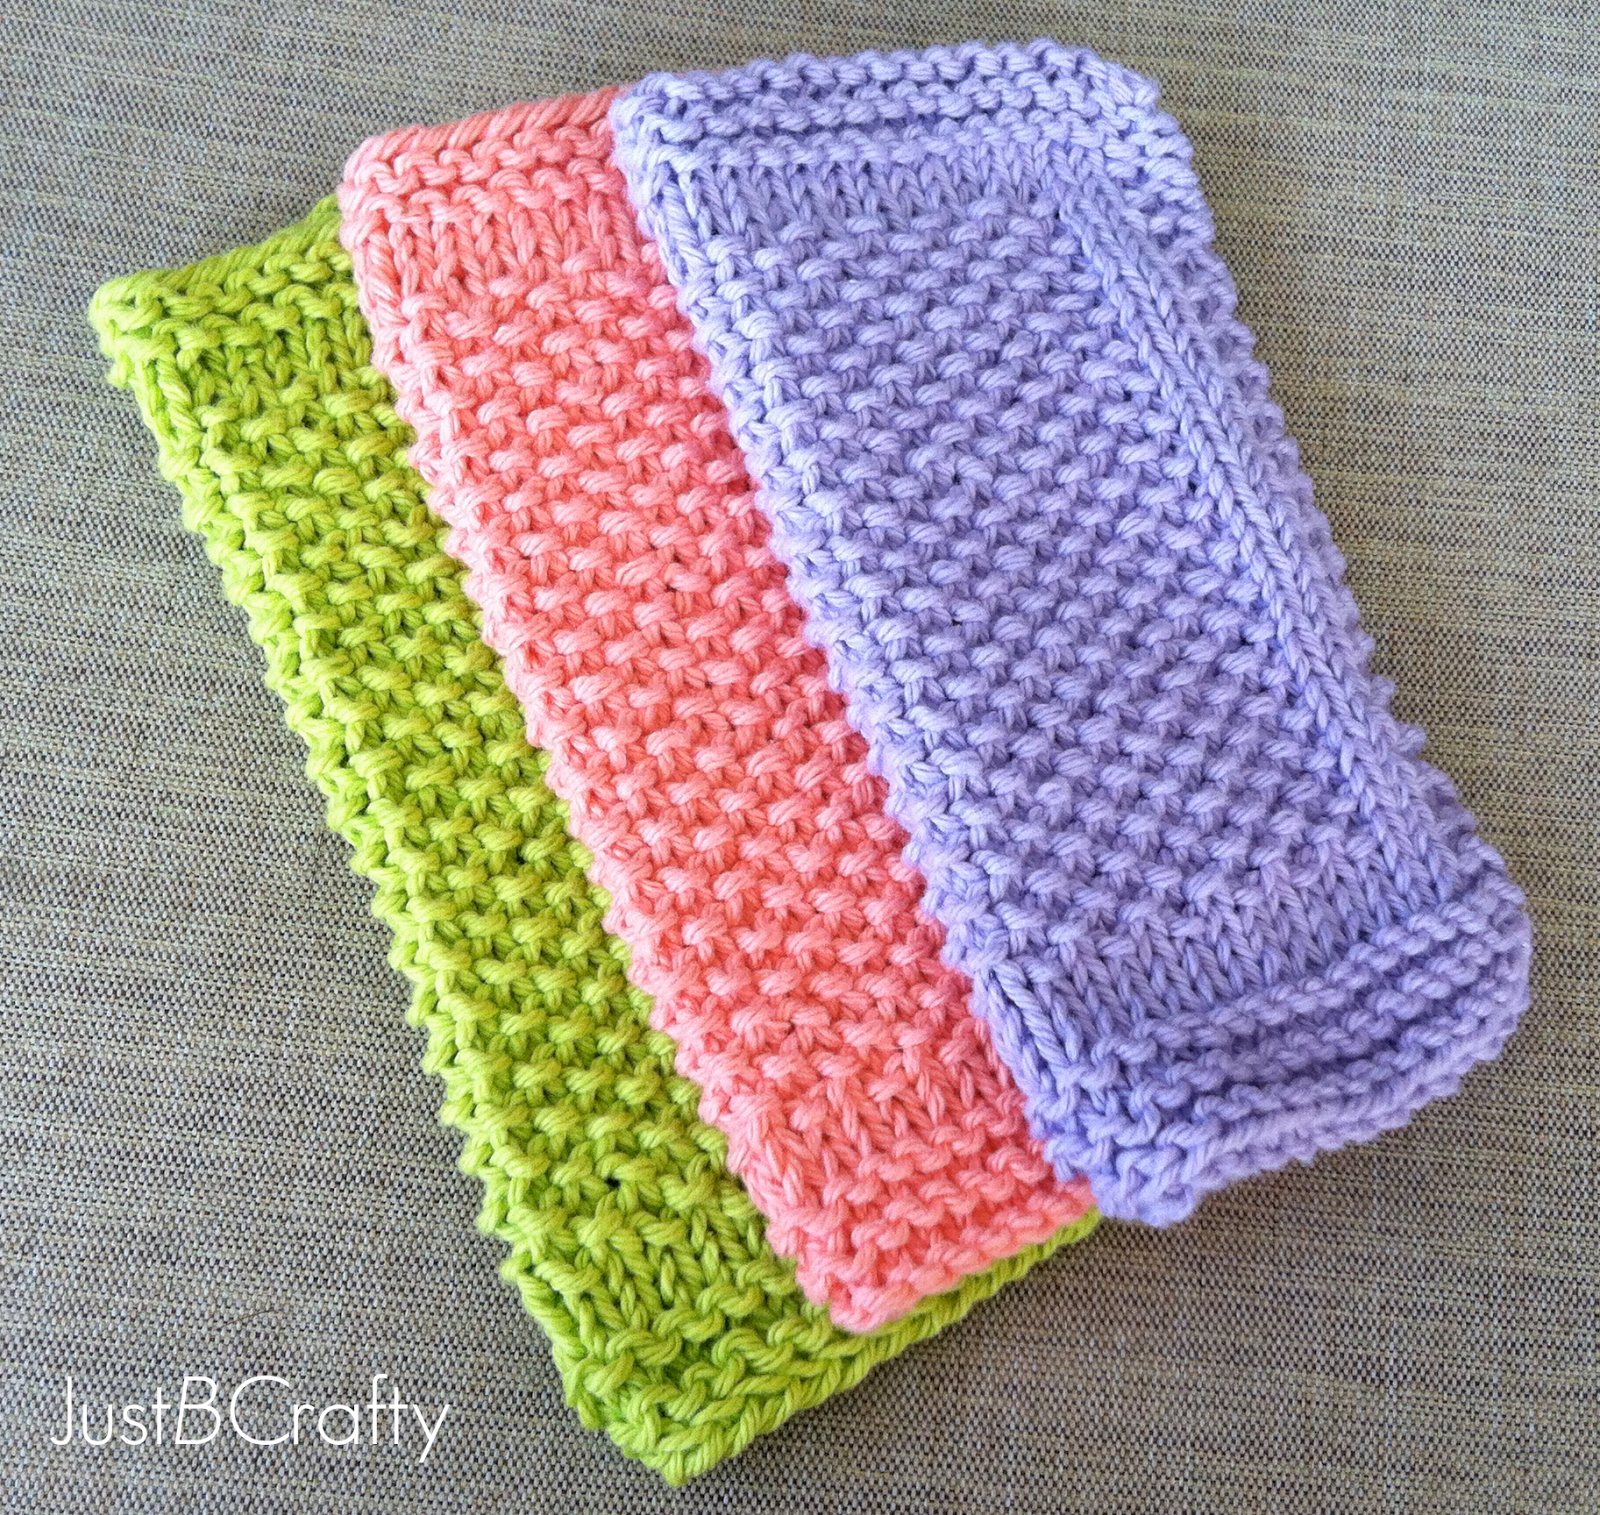 Dish Cloth Knitting Pattern : Seed Stitch Dishcloths - Just Be Crafty